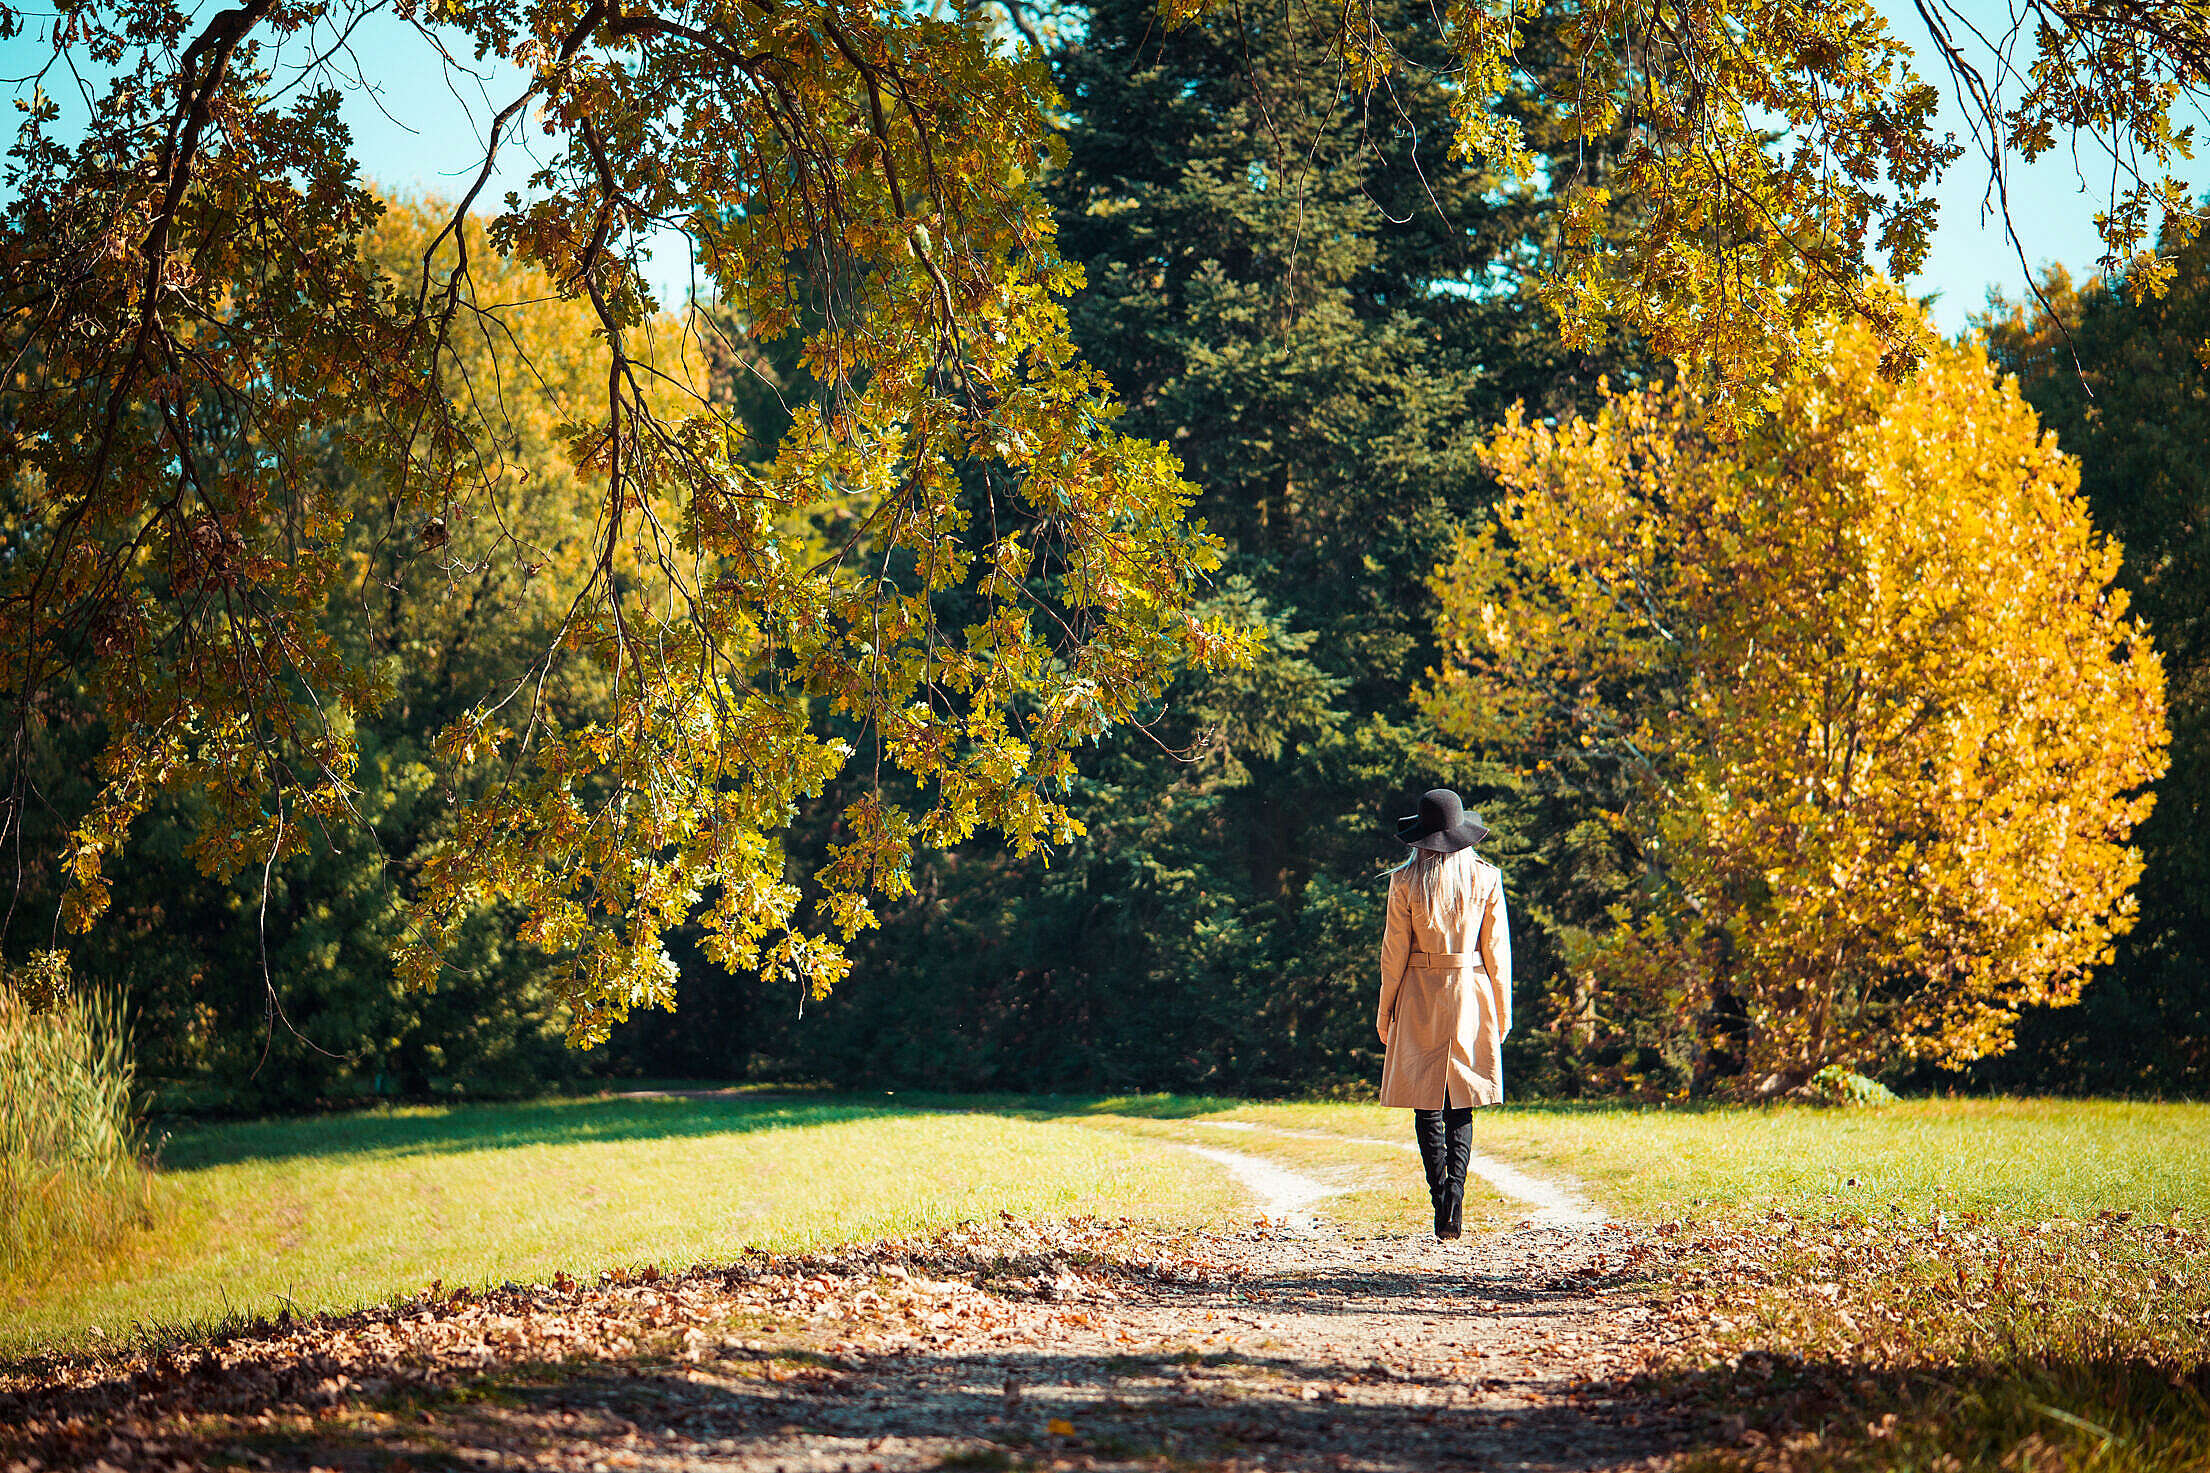 Woman Walking in a Park in Autumn Free Stock Photo